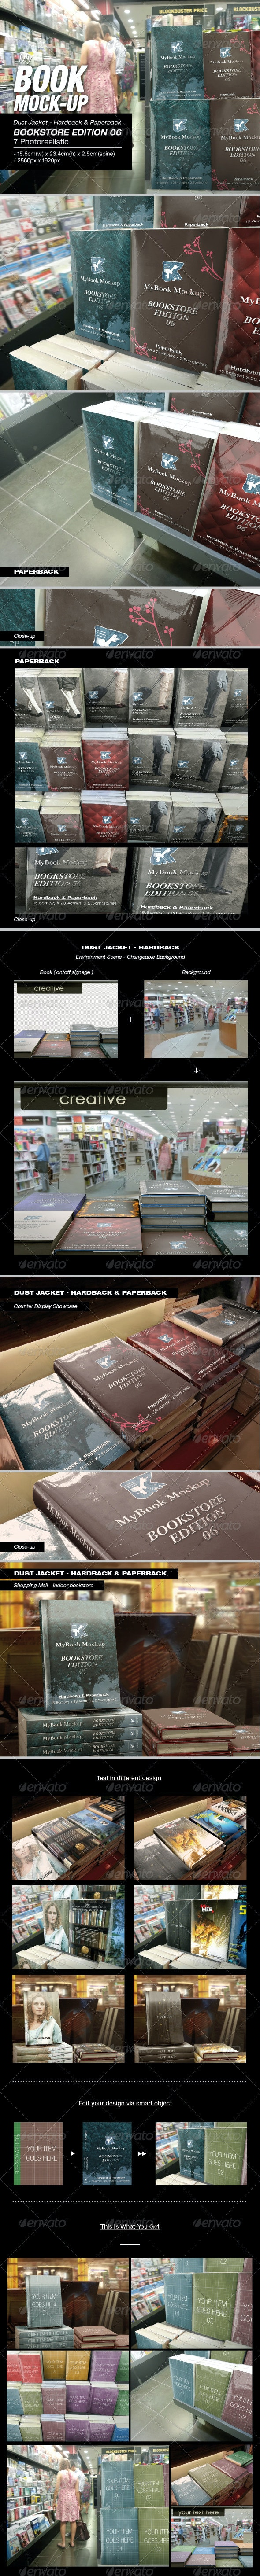 Bookstore Edition 06 Mock-up - Books Print